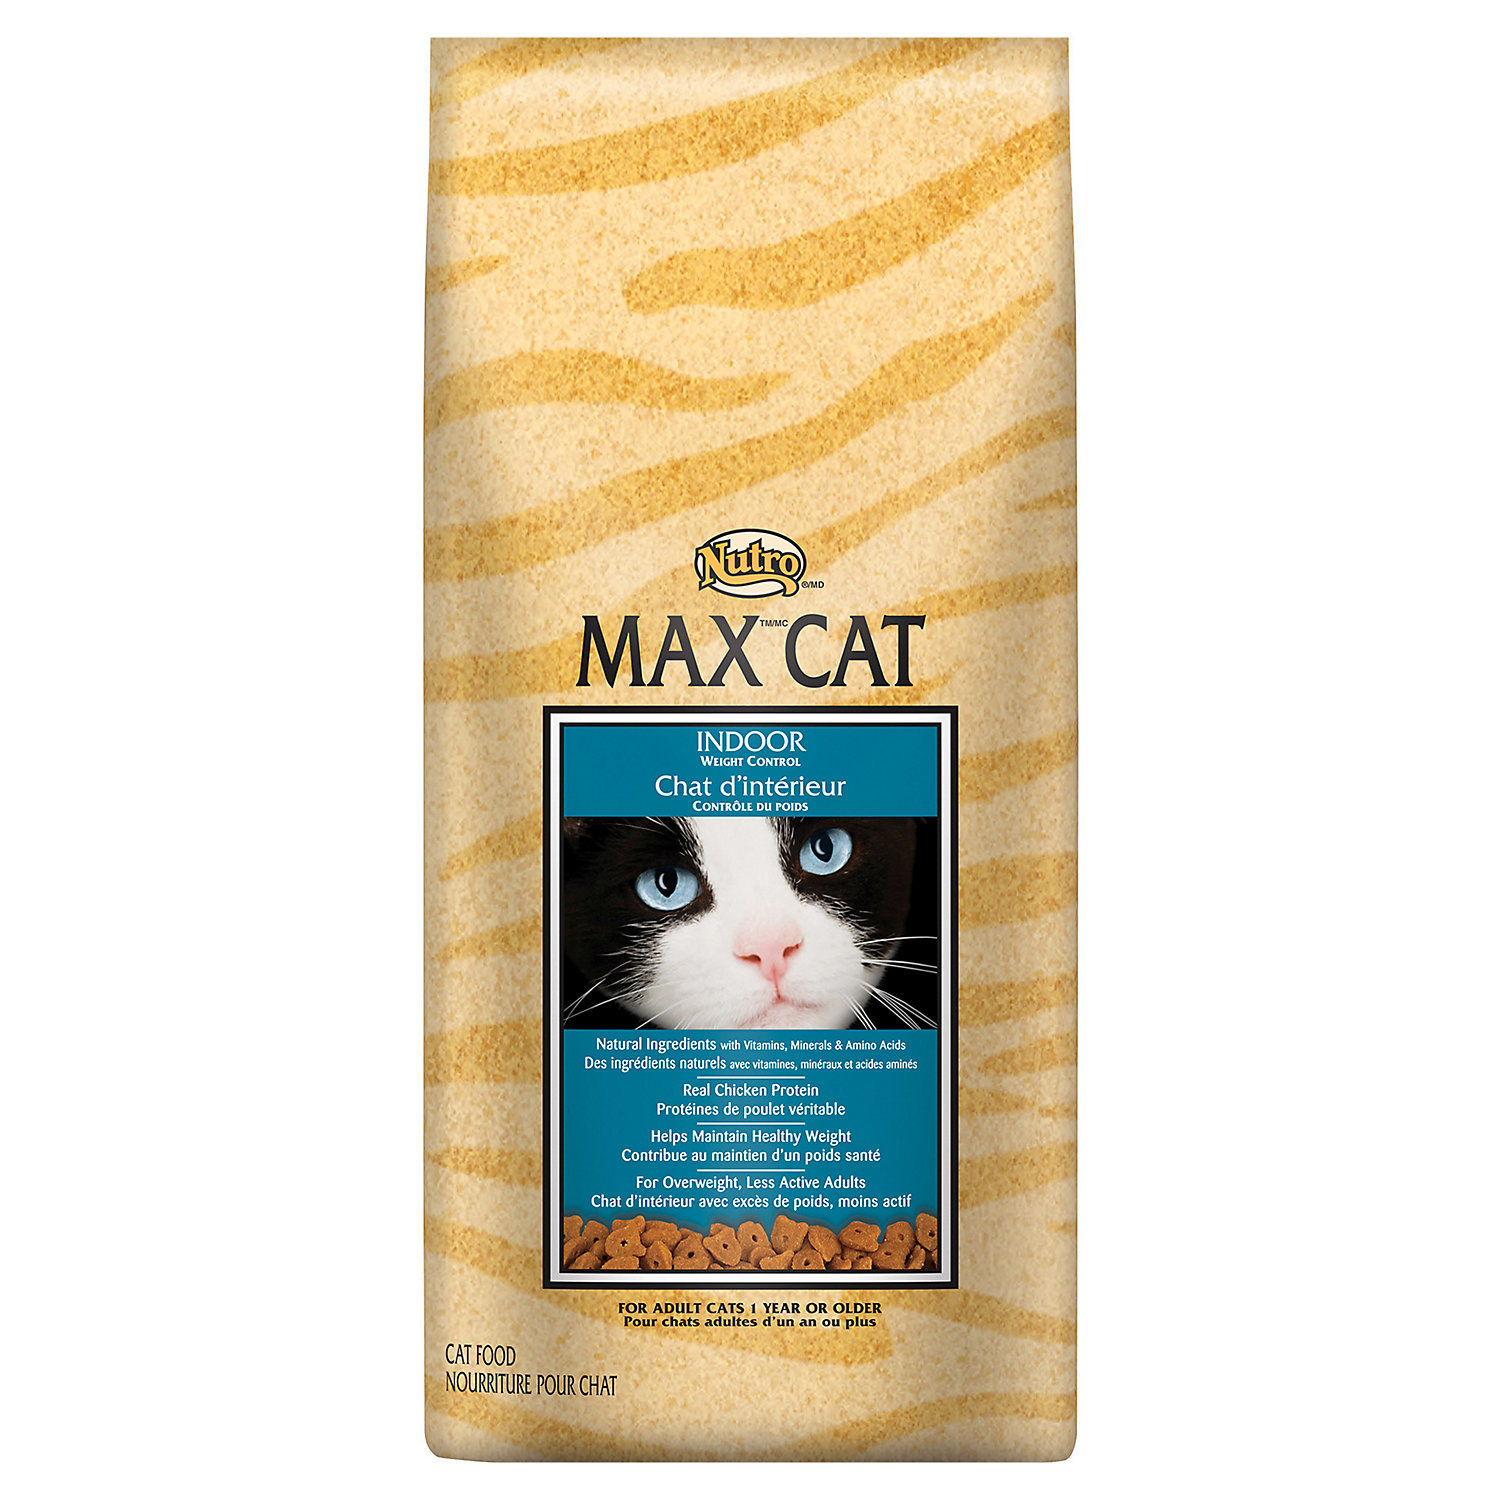 Nutro MAX CAT Indoor Weight Control Adult Chicken Cat Food (6 lbs.) (1/19) (A.F4)